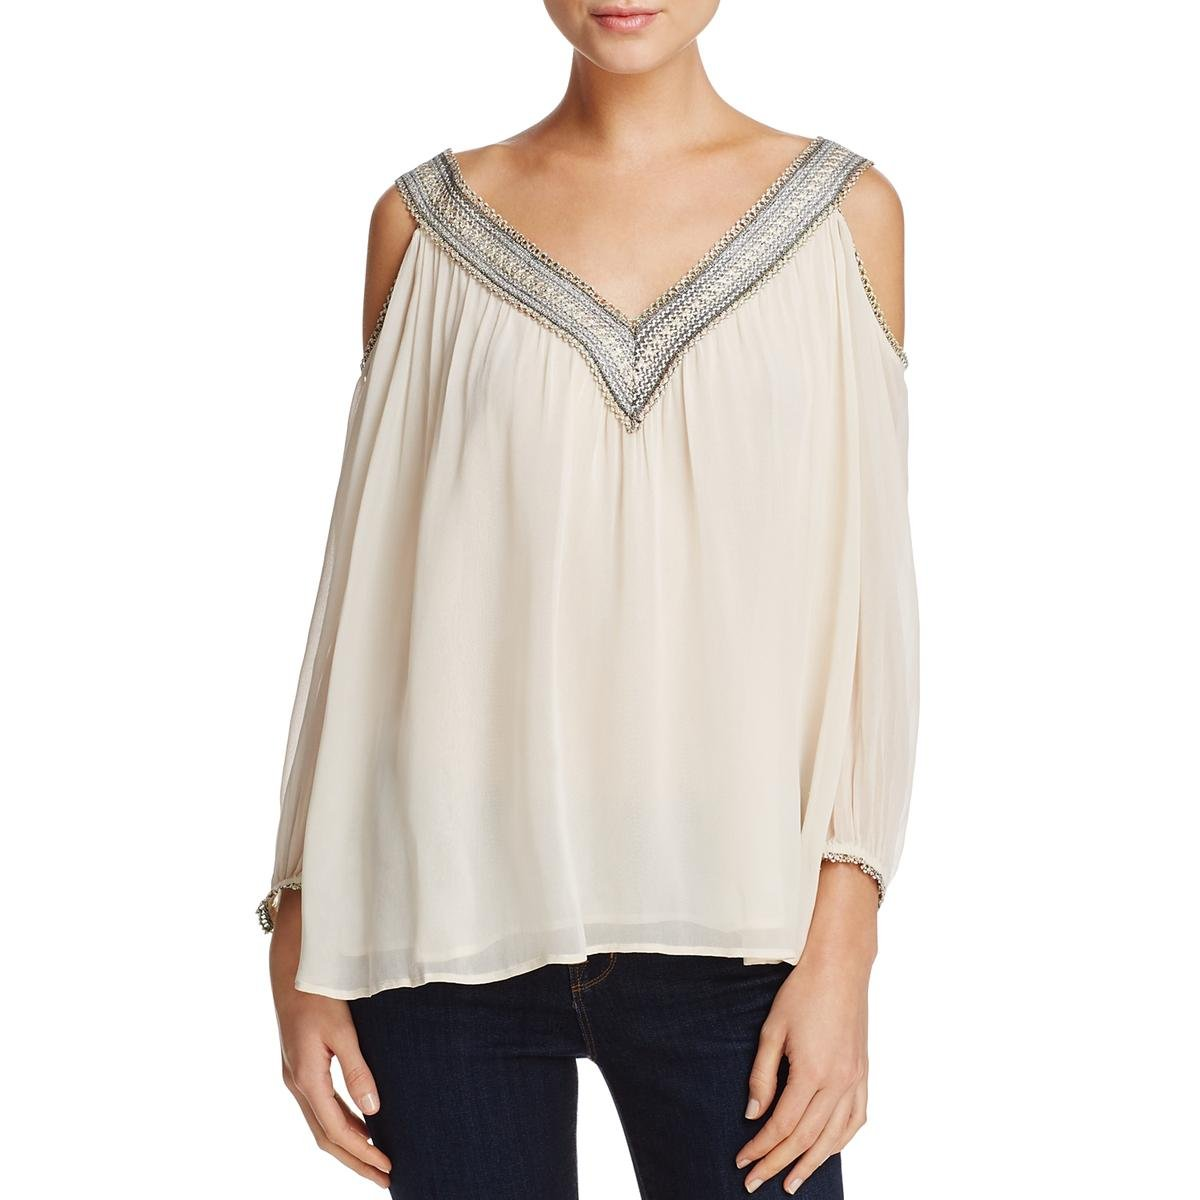 Love Sam Womens Embroidered Metallic Trim Open Shoulder Peasant Top Ivory M